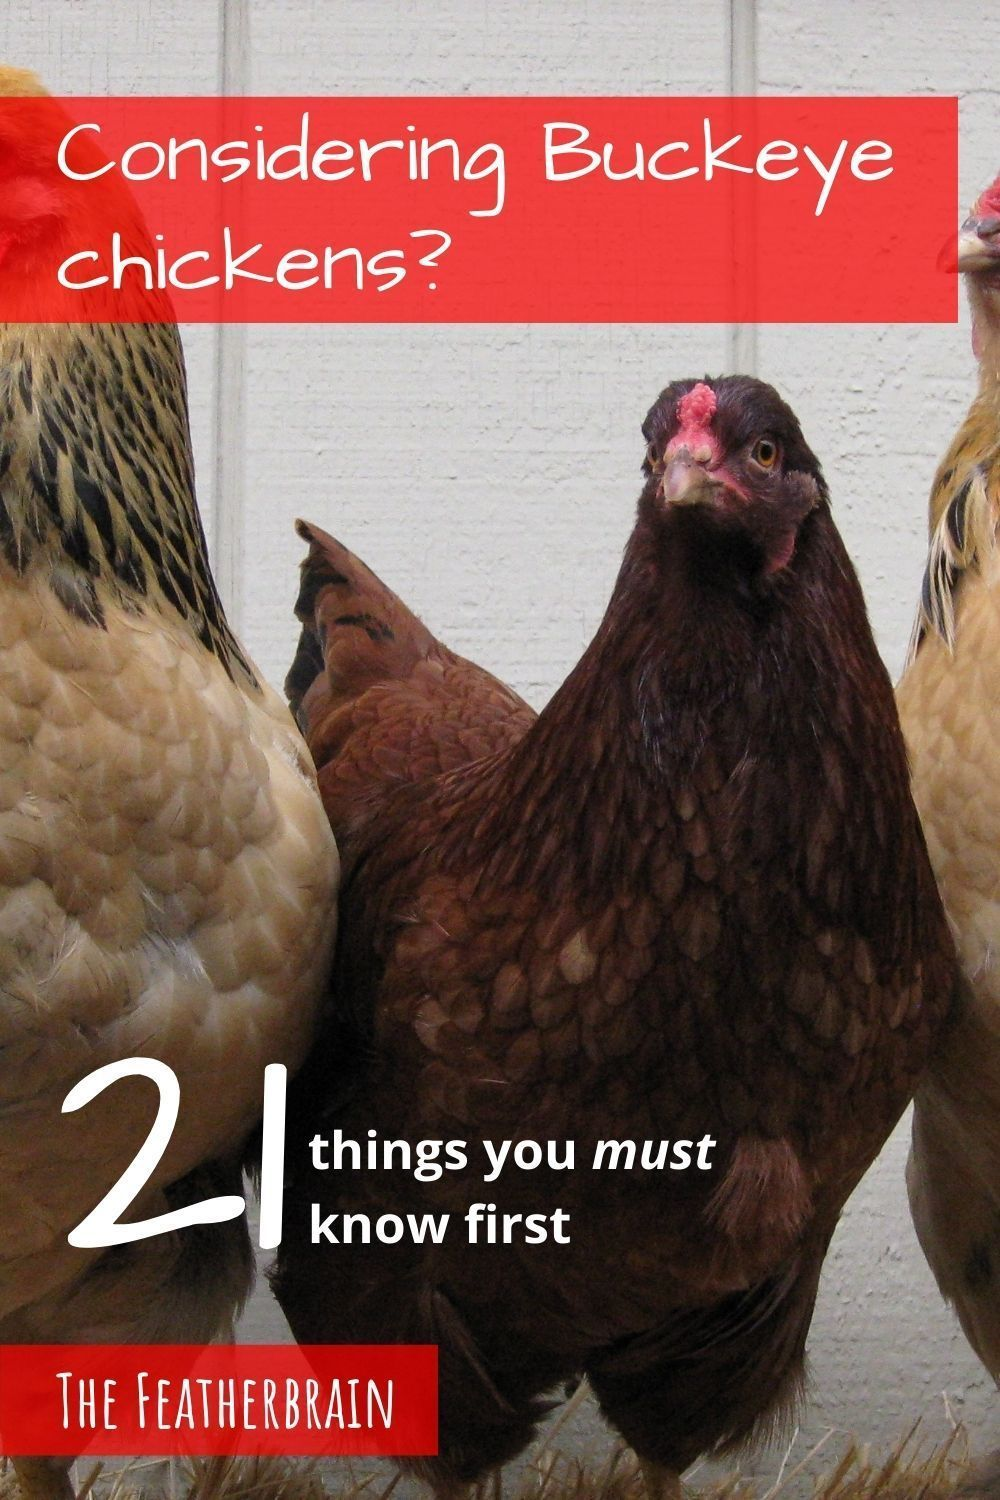 Buckeye chickens: Everything you need to know